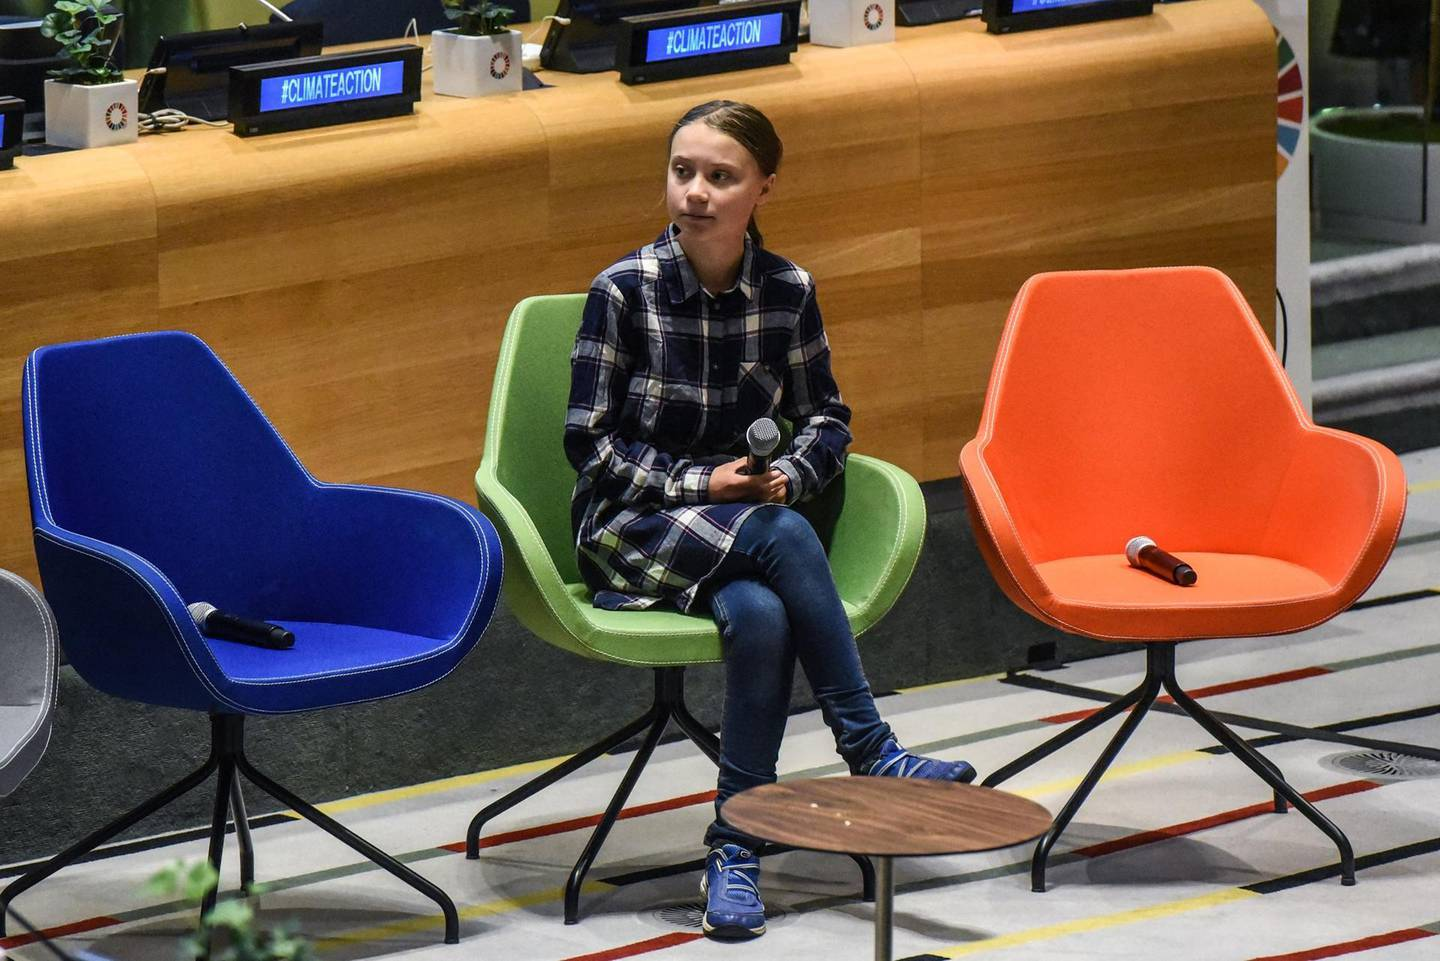 NEW YORK, NY - SEPTEMBER 21: Greta Thunberg sits before speaking at the first ever United Nations Youth Climate Summit on September 21, 2019 in New York City. The Youth Climate Summit is intended to bring together young activists who are committed to combating climate change at the pace and scale needed to meet the challenge.   Stephanie Keith/Getty Images/AFP == FOR NEWSPAPERS, INTERNET, TELCOS & TELEVISION USE ONLY ==